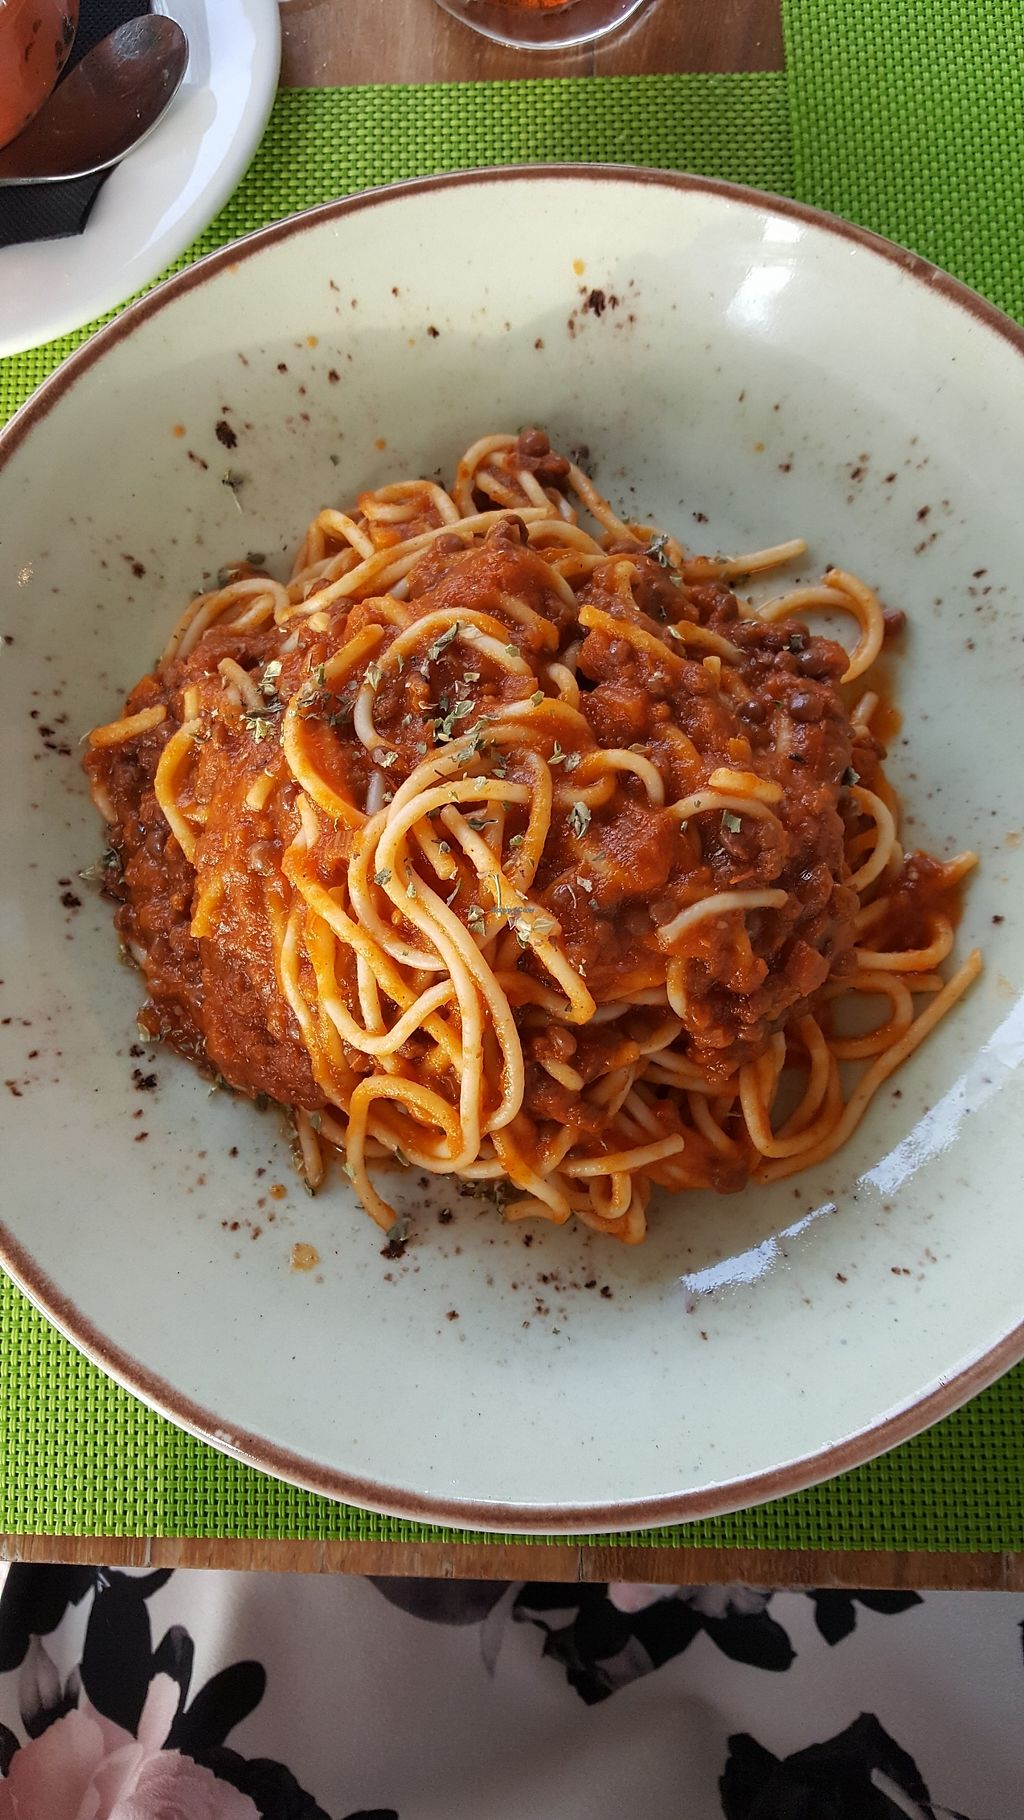 """Photo of Fuel RestoBar  by <a href=""""/members/profile/LisaNastasi"""">LisaNastasi</a> <br/>Vegan Lentil Bolognese <br/> June 29, 2017  - <a href='/contact/abuse/image/91617/274894'>Report</a>"""